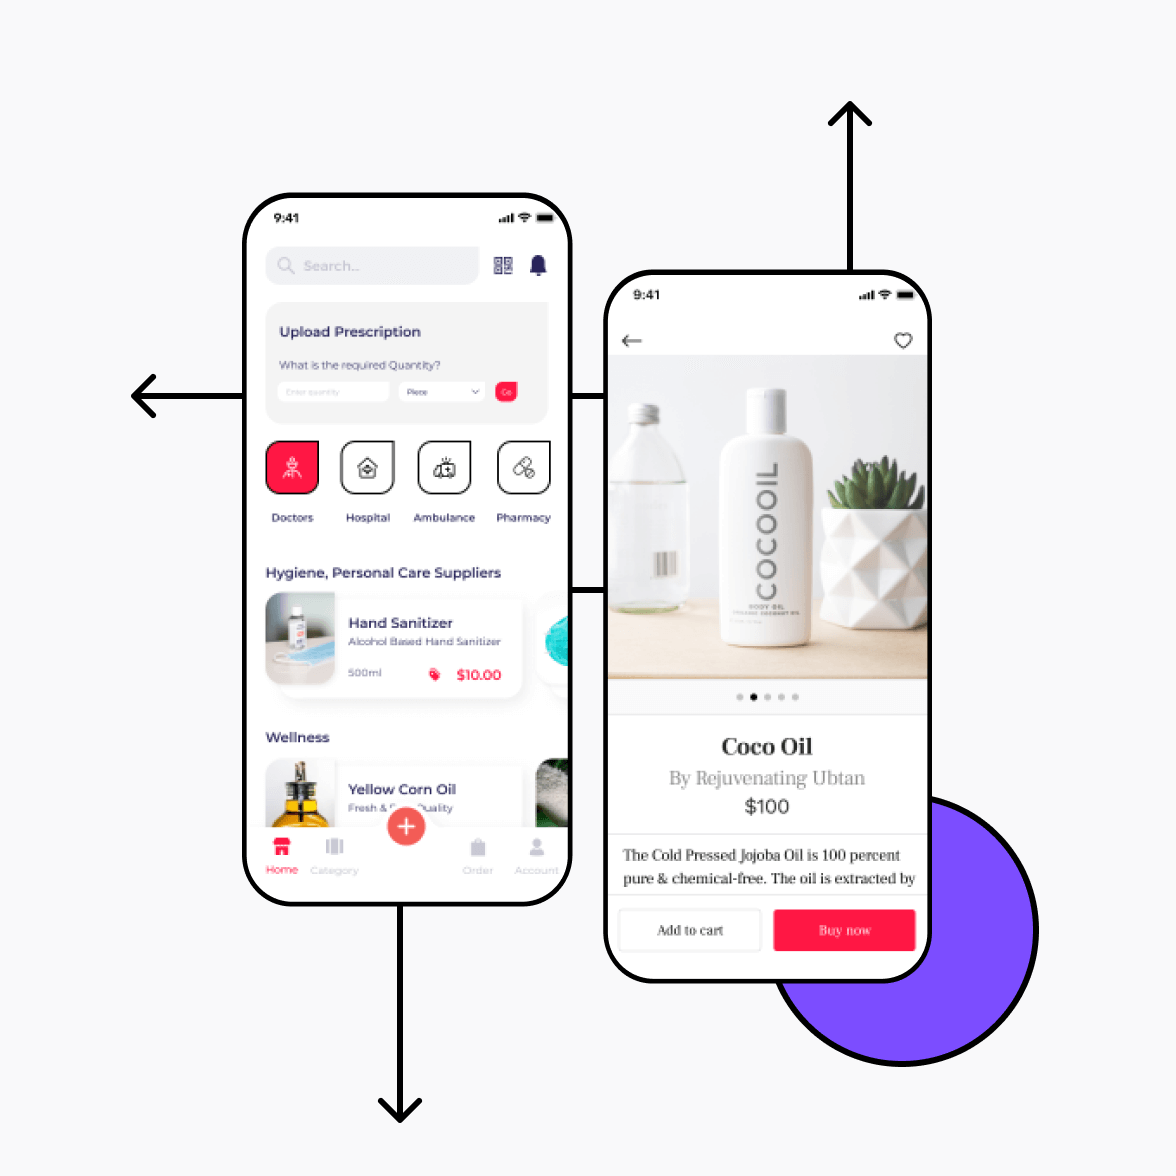 Medicine delivery app screens with product details and listing